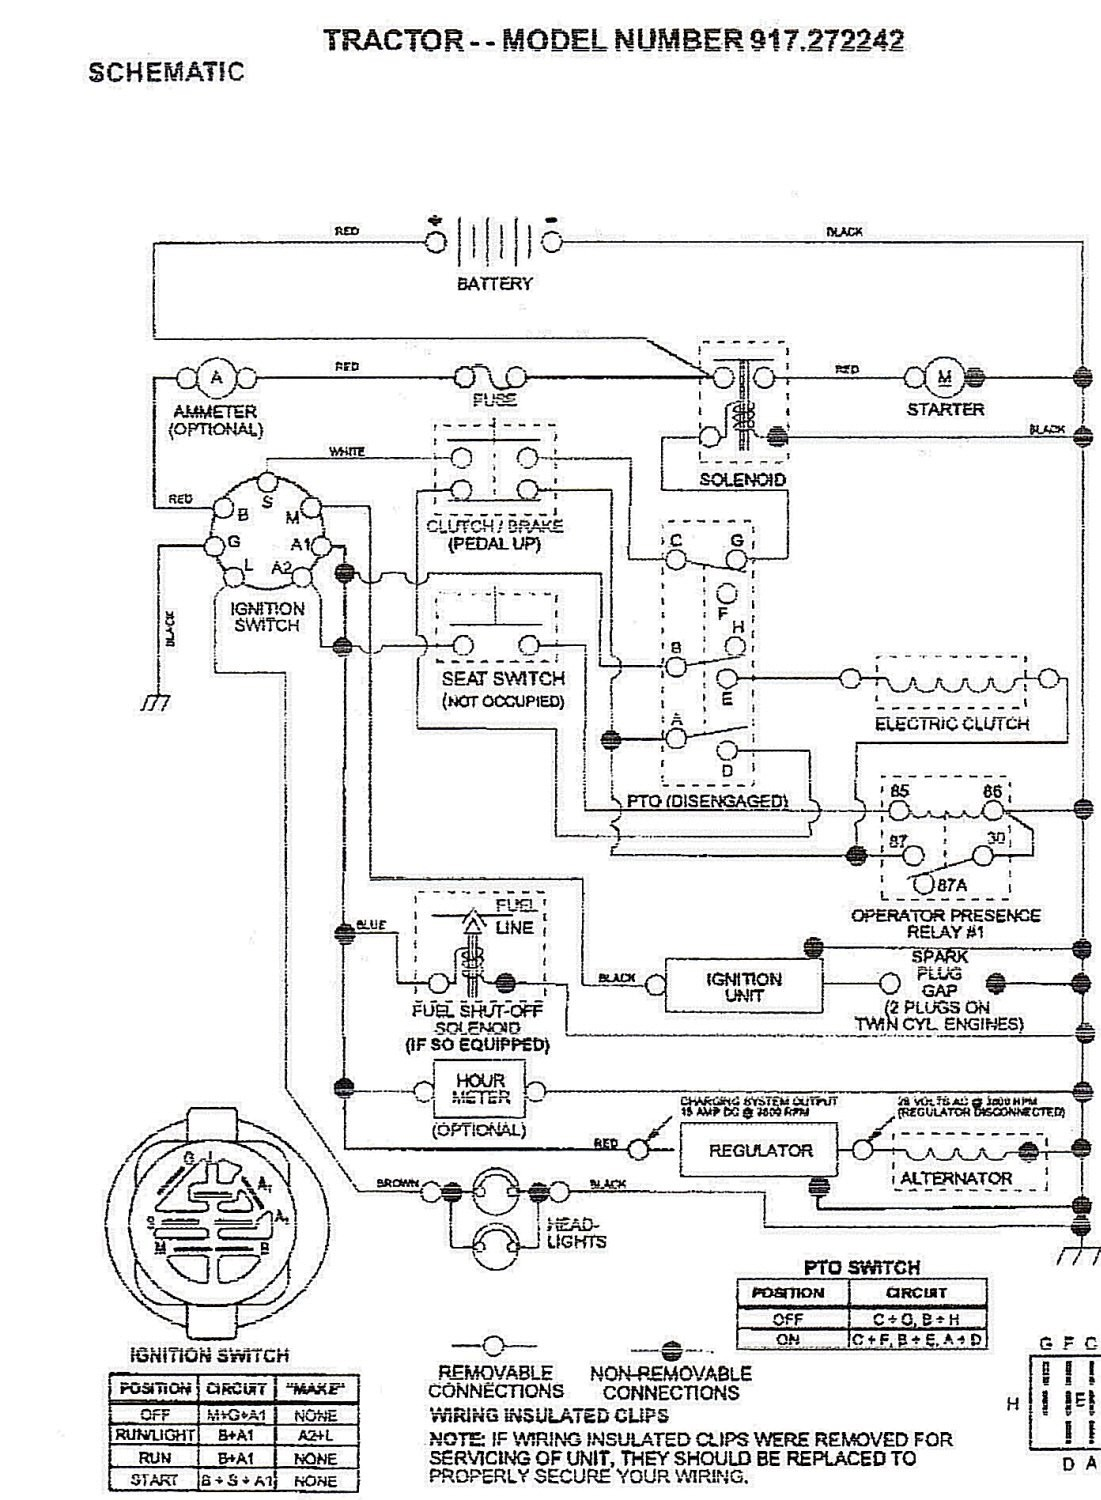 hunt magneto wiring diagram